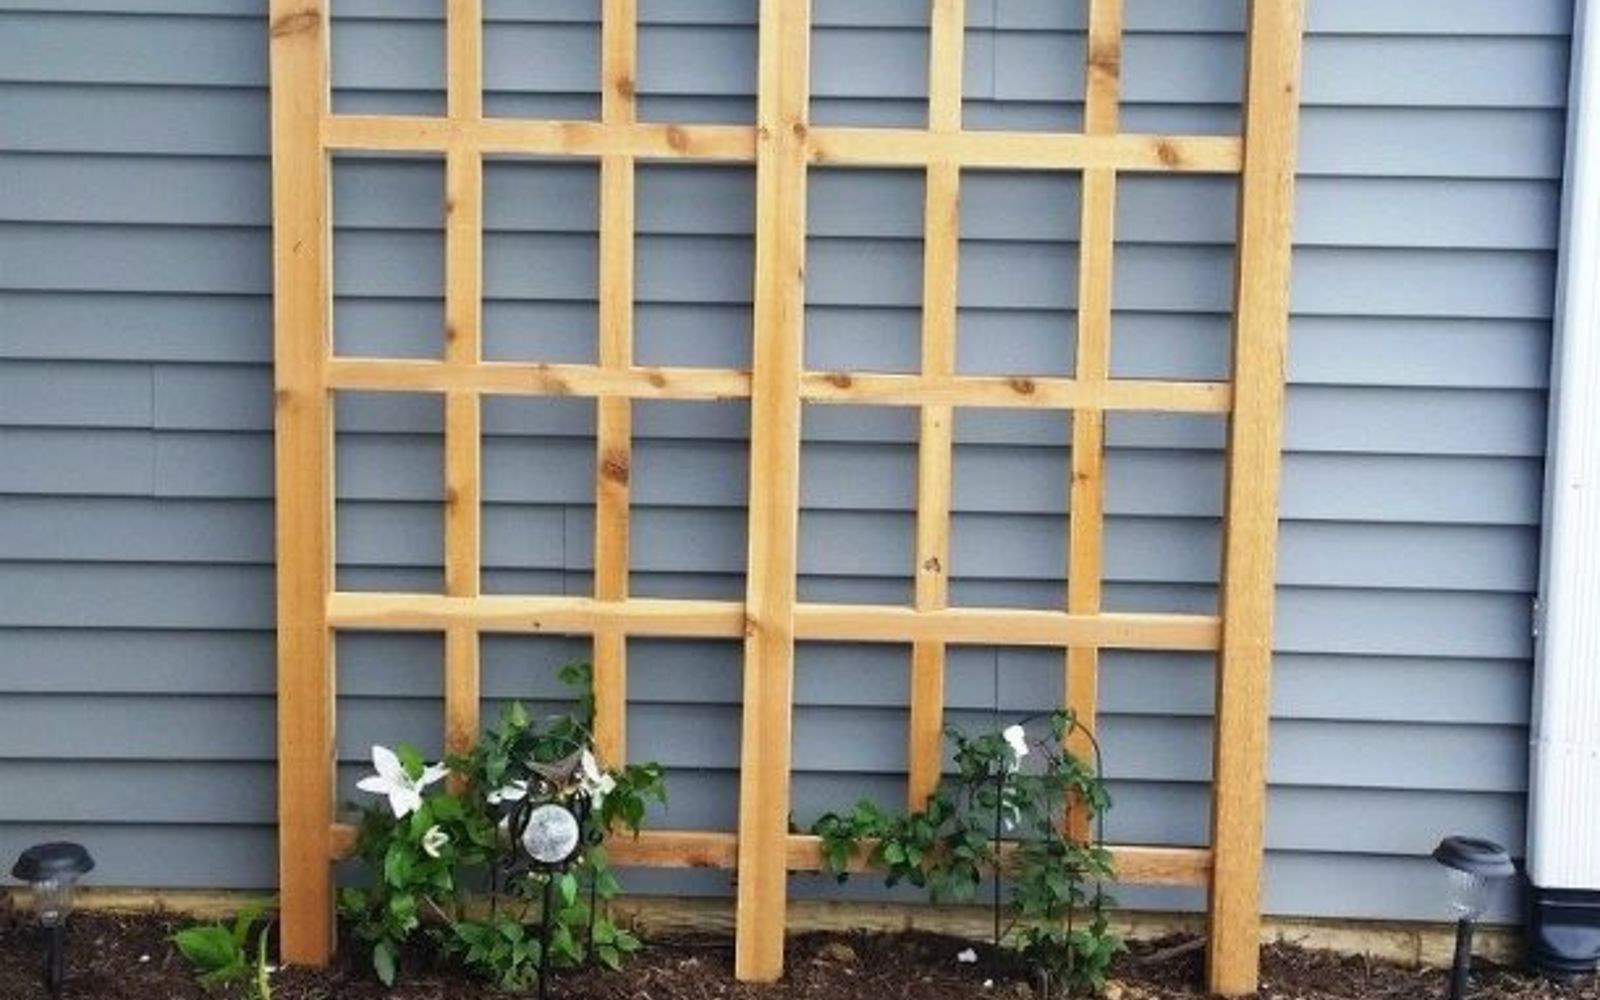 s 17 ways to build a gorgeous garden trellis this summer, gardening, Put up a standing wood grid for tall climbers